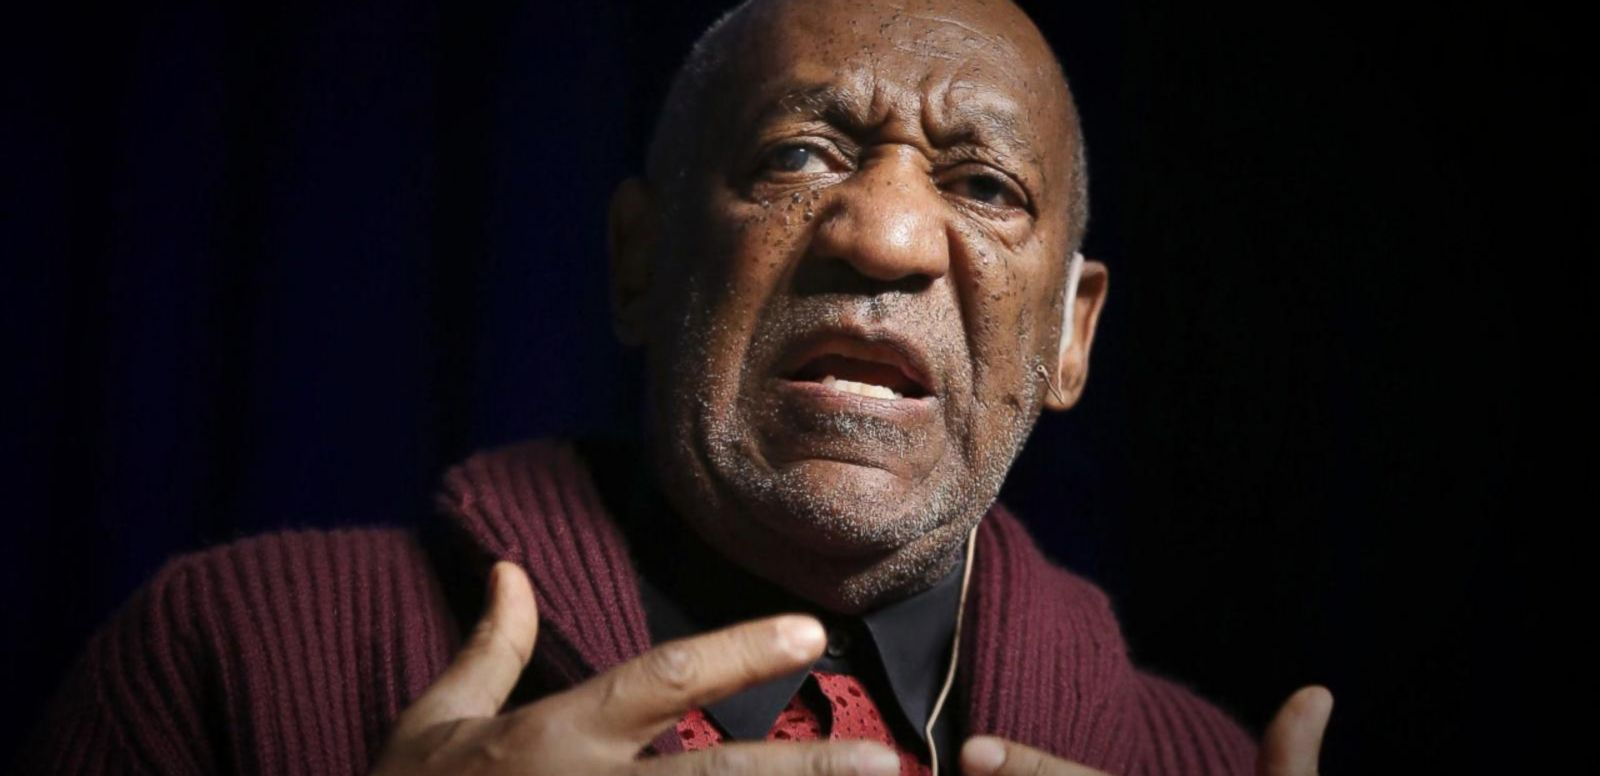 VIDEO: Bill Cosby Back in Court Today